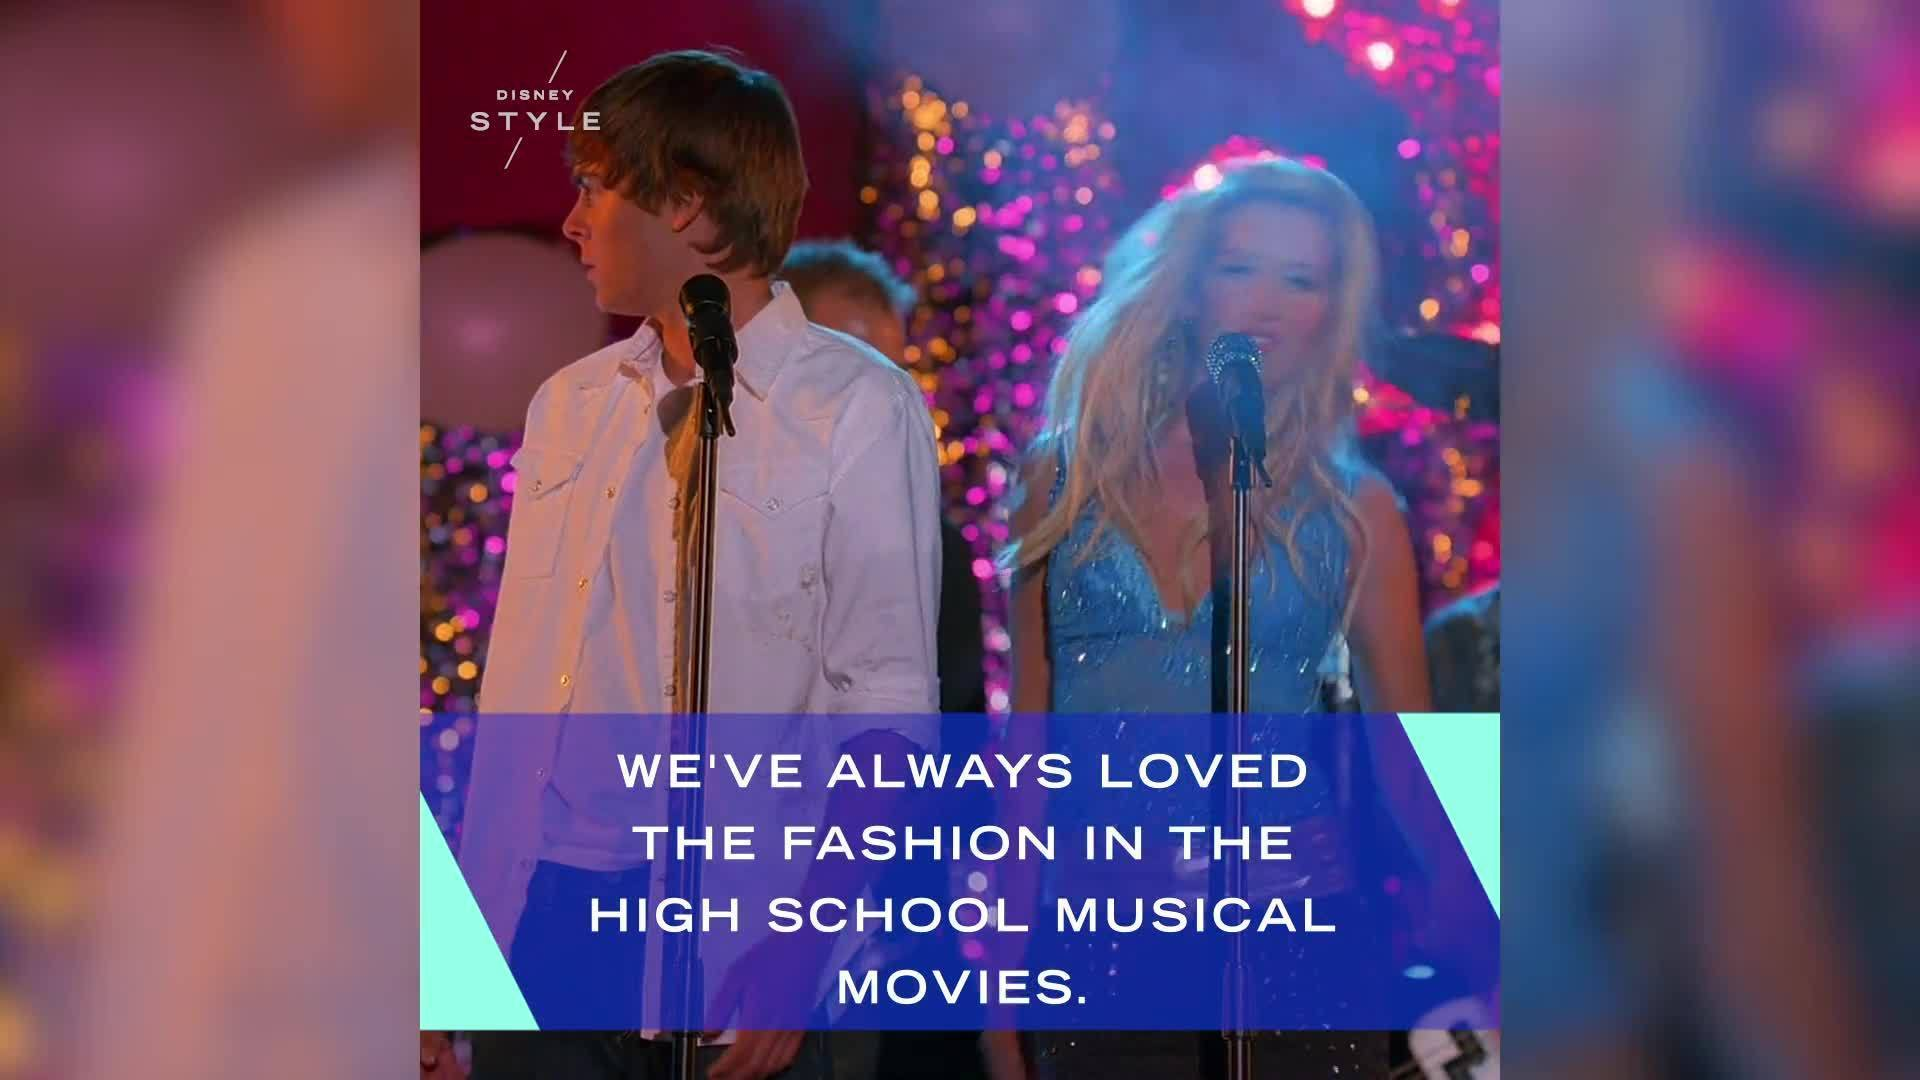 Top Fashion Moments From the High School Musical Films | Disney Style